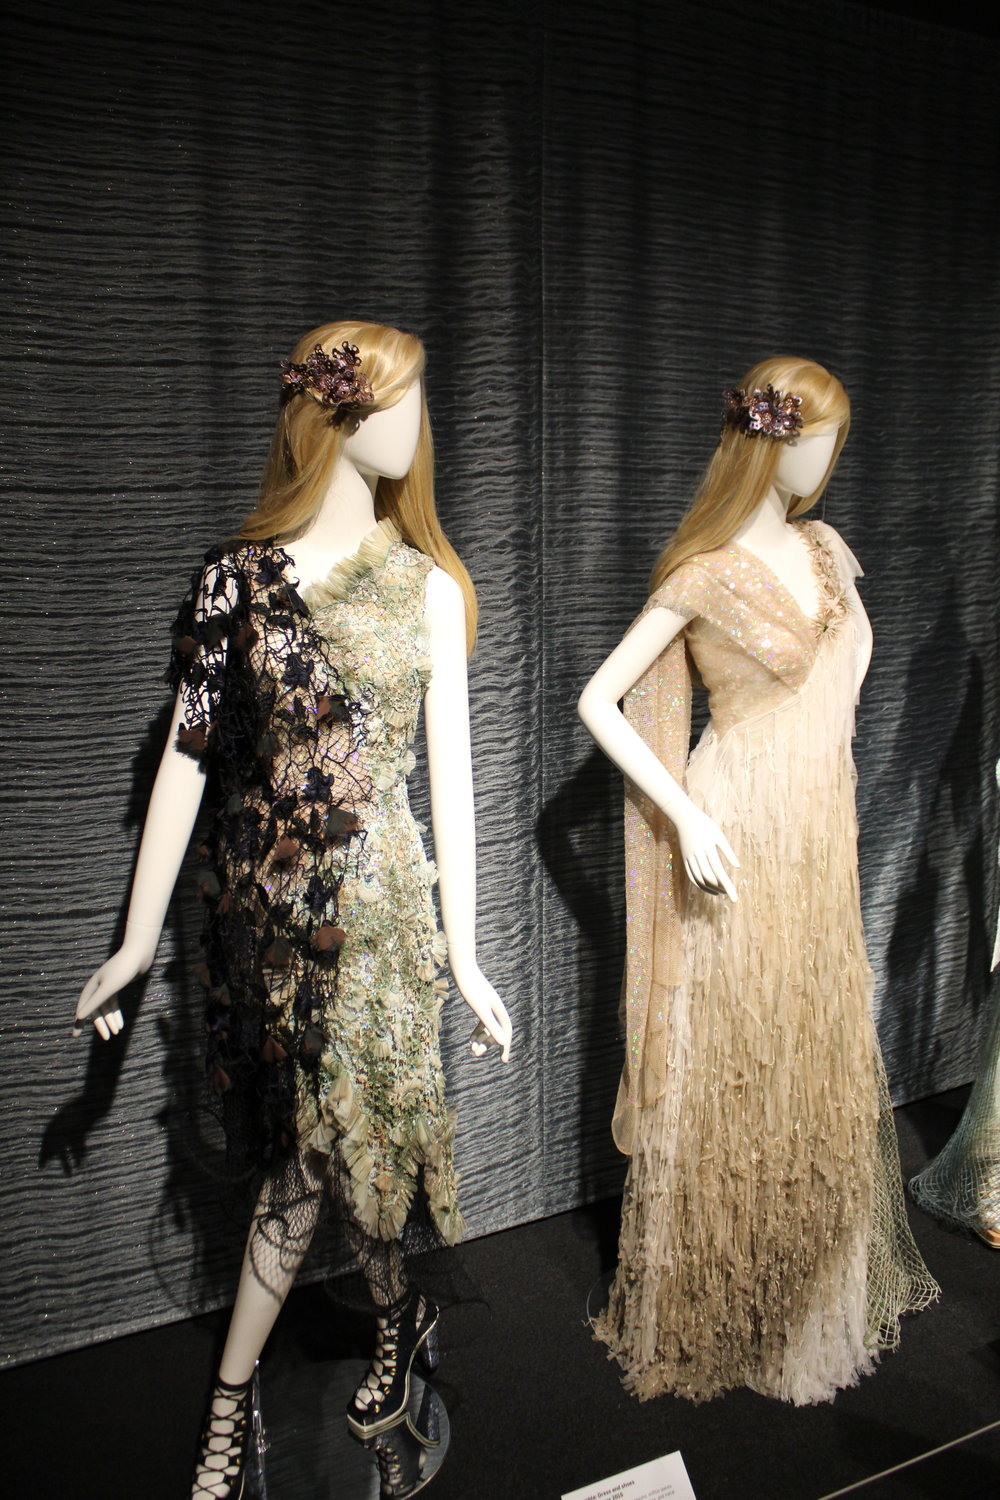 I enjoy the dramatic detail of each of these dresses. From the fish neck fabric to the feathers, I think each dress makes a bold statement on their own.